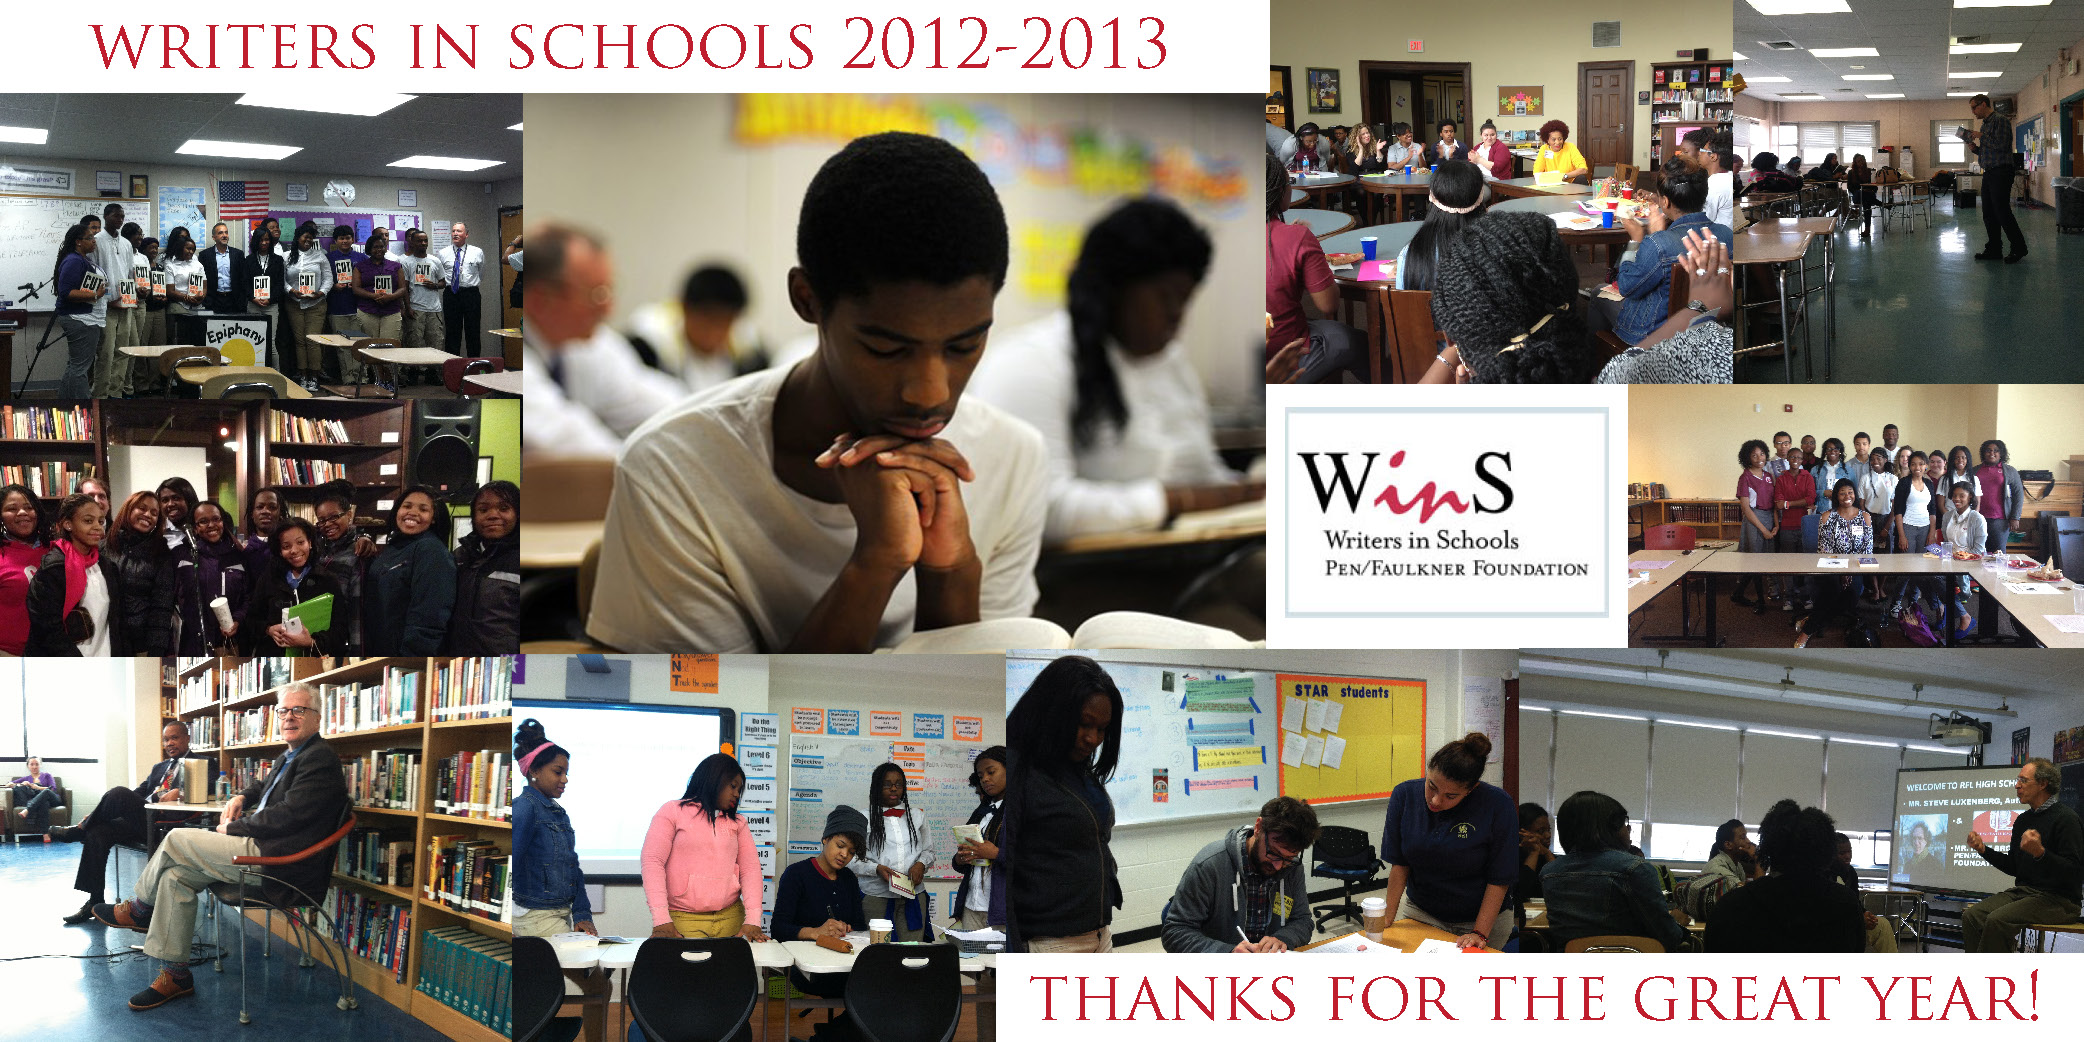 Composite image of various Writers in Schools visits in Washington, DC and Baltimore, MD during the 2012-2013 academic year.